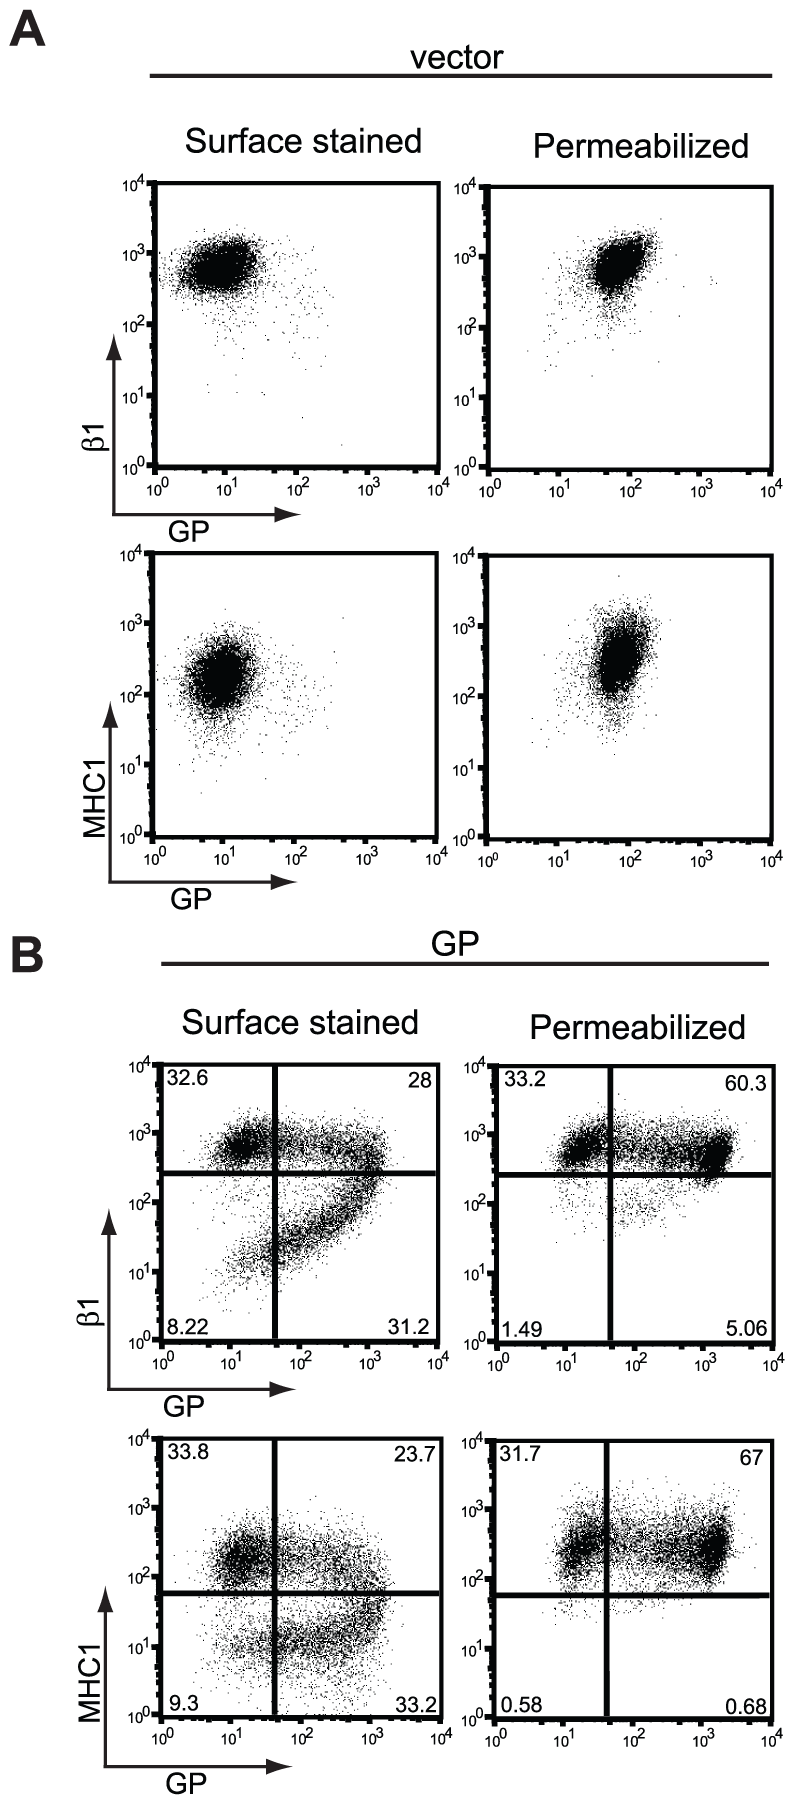 Steady-state levels of β1 integrin and MHC1 are unchanged in GP-expressing cells.